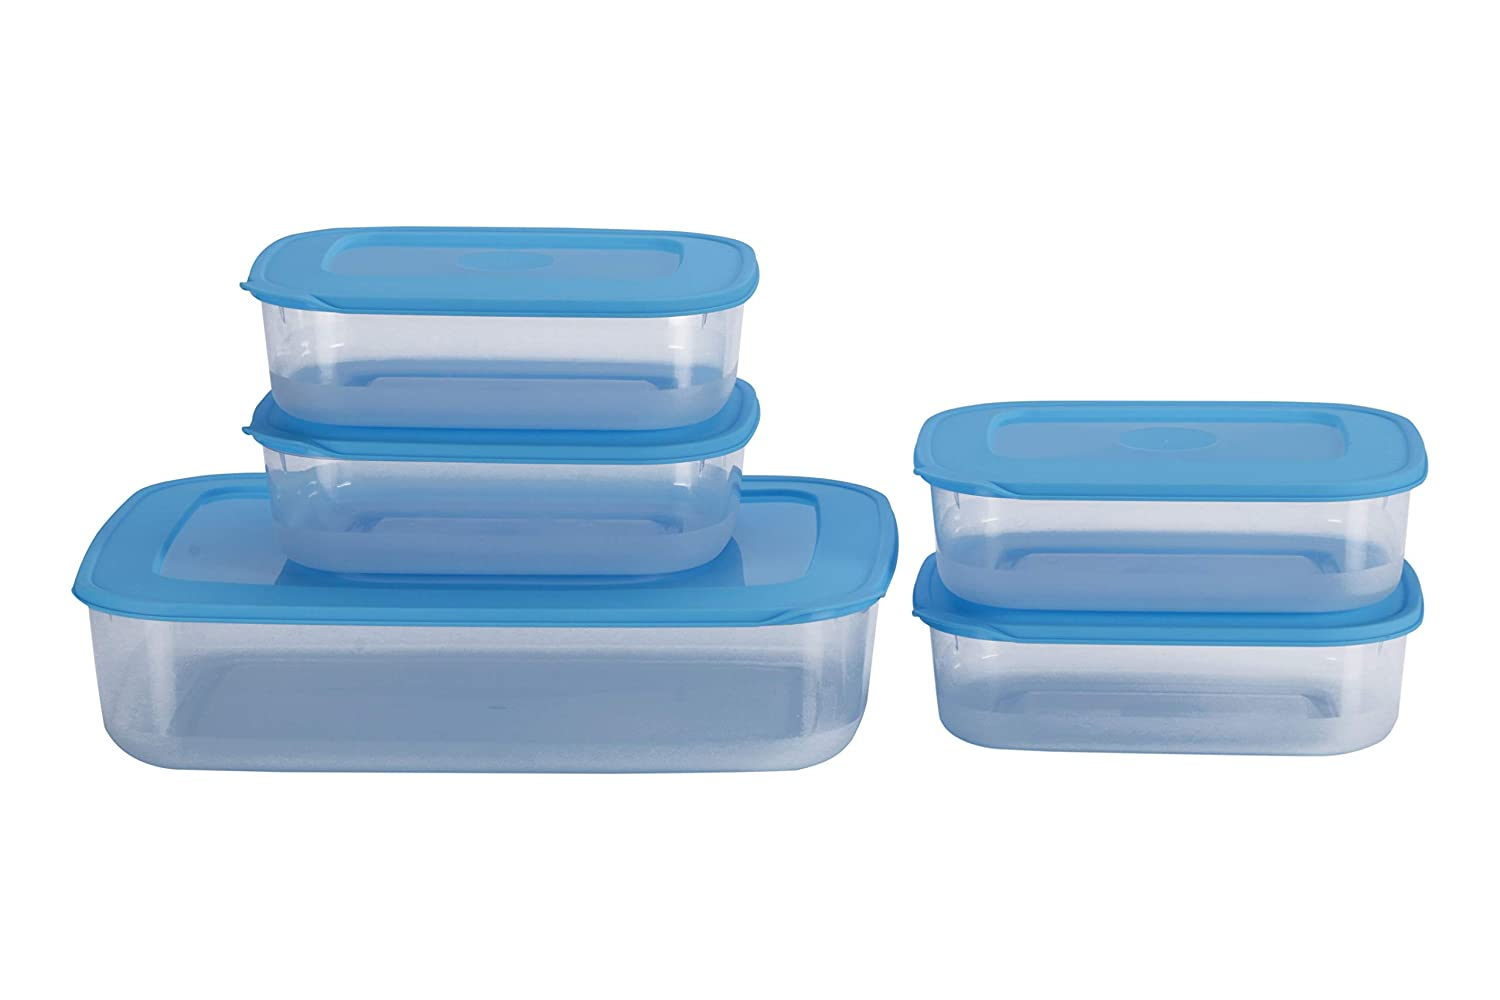 All Time Basic Plastic Container Set, 5-Pieces, Blue RS 160 at Amazon